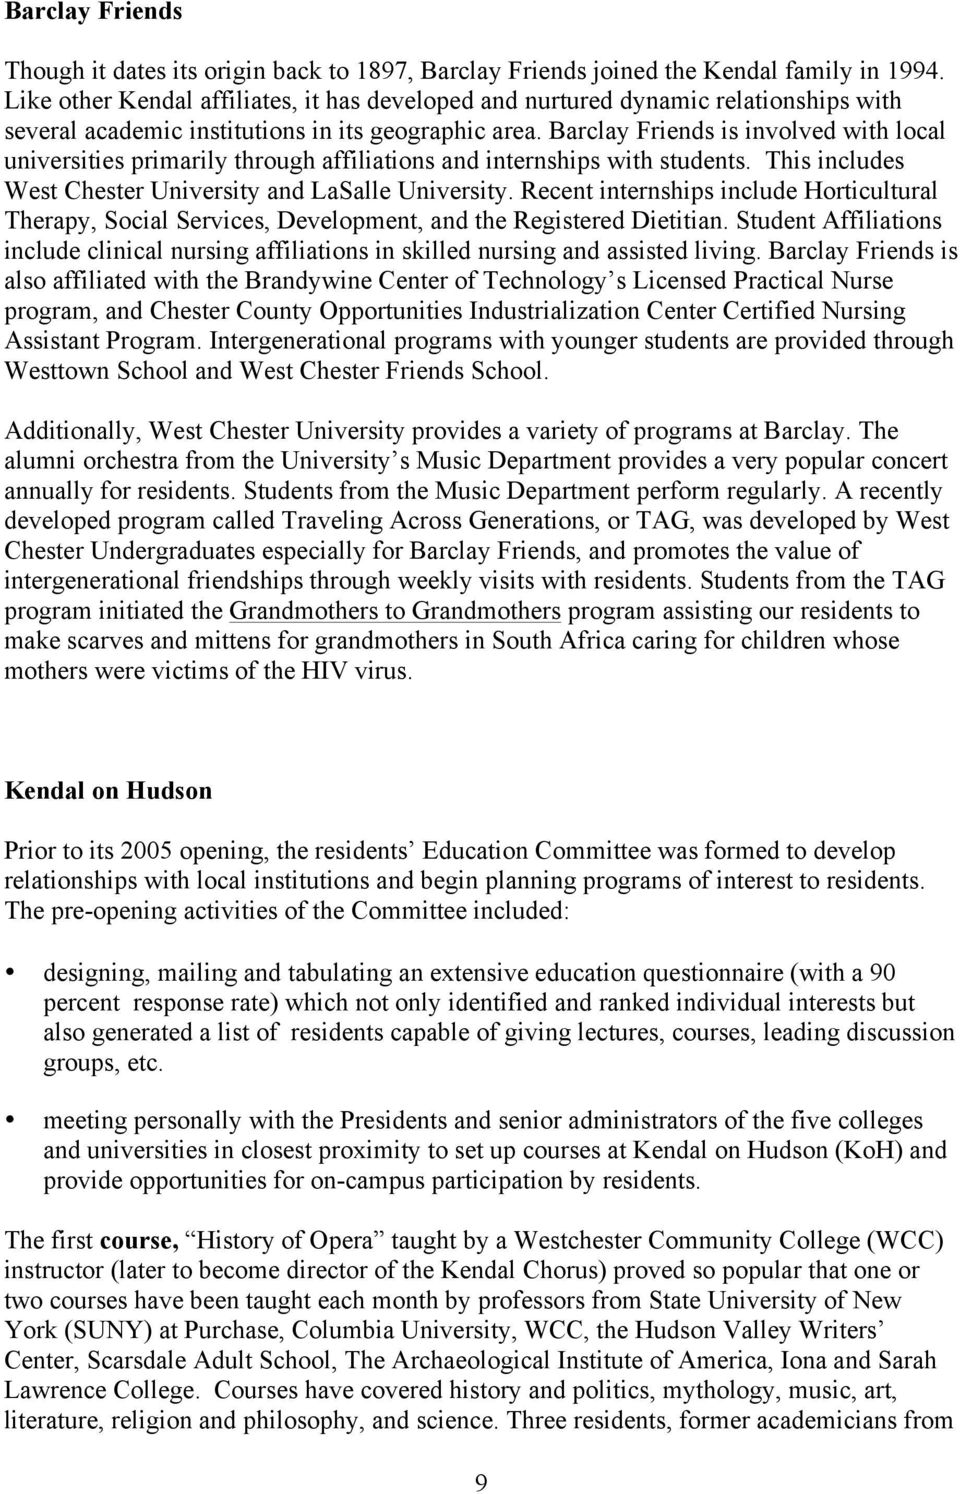 Barclay Friends is involved with local universities primarily through affiliations and internships with students. This includes West Chester University and LaSalle University.